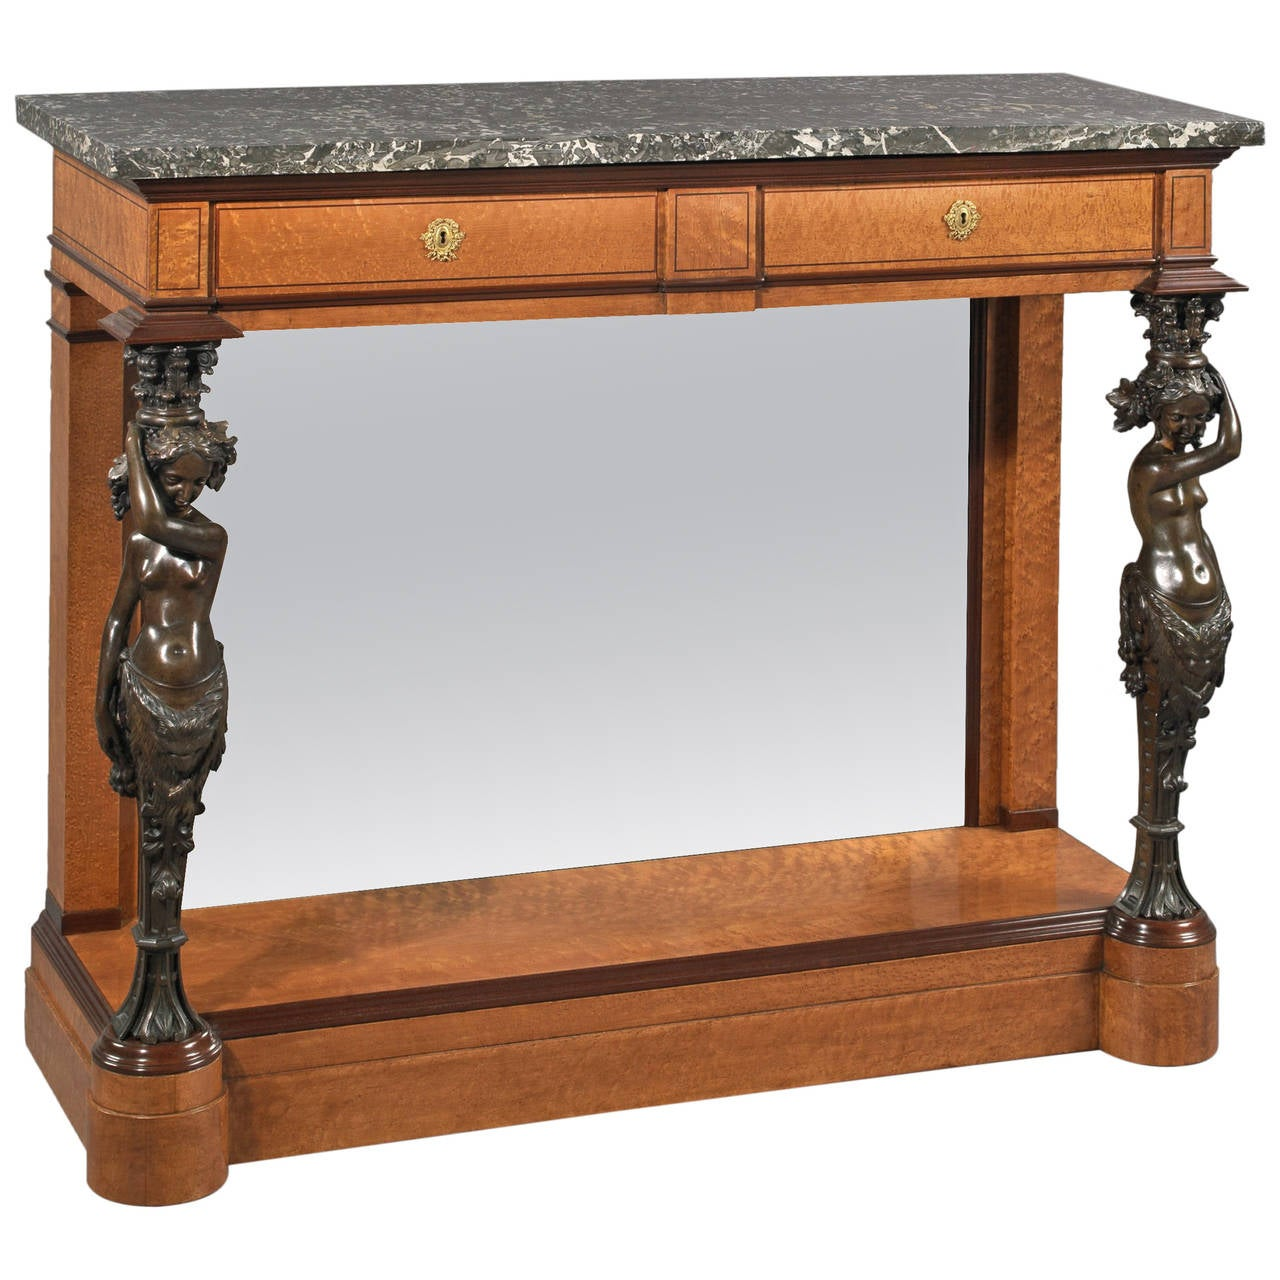 Console table provenance louis philippe king of france for Table louis philippe